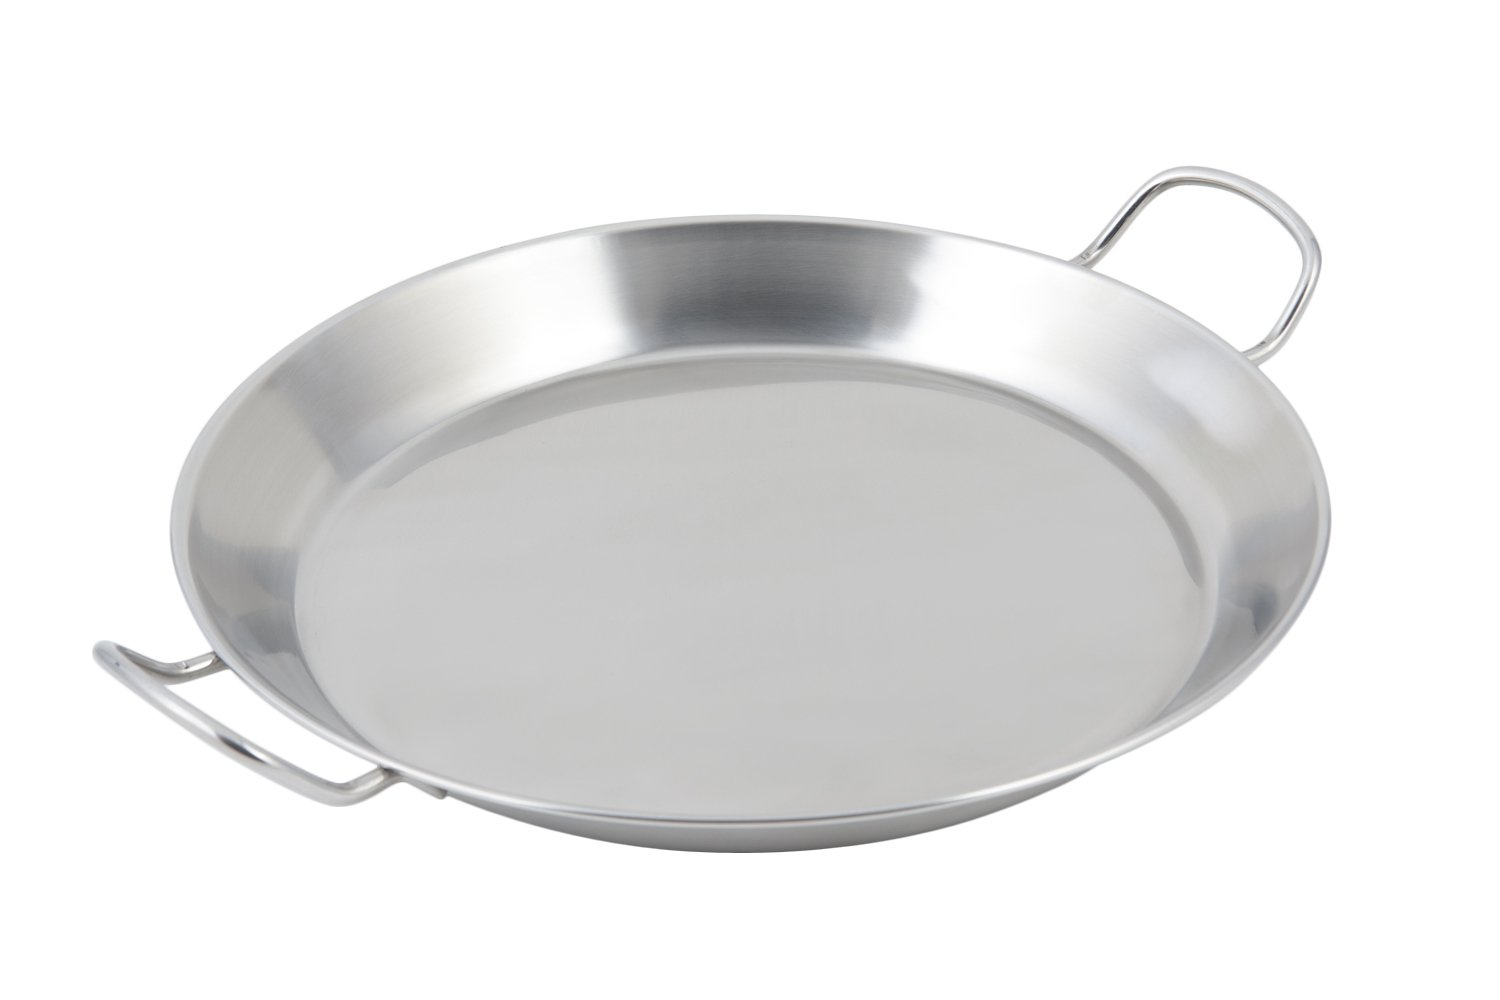 Bon Chef 61249 Stainless Steel Paella Induction Bottom Spanish Tray, 14-51/64'' Diameter